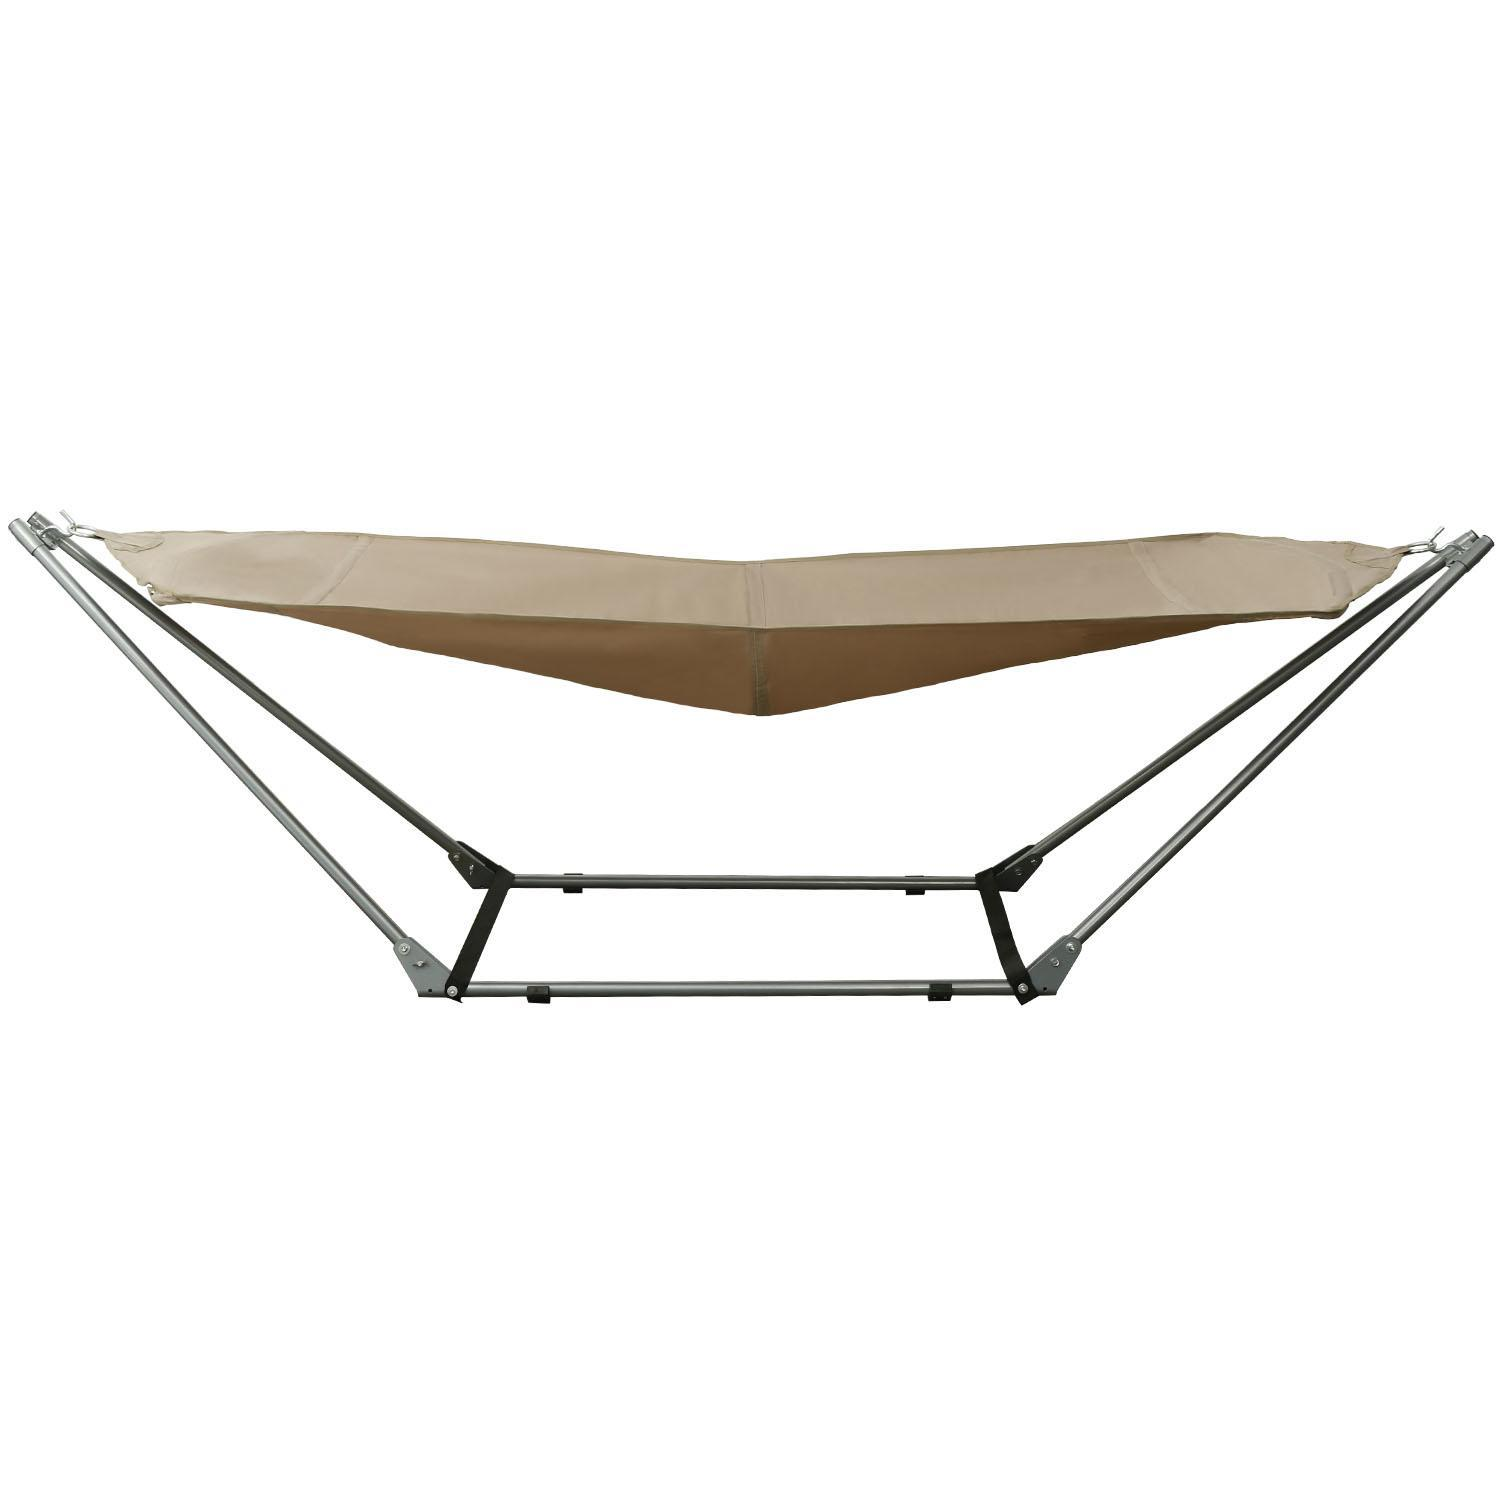 Foldable Adjustable Hammock Garden Beach With Carrying Bag 0